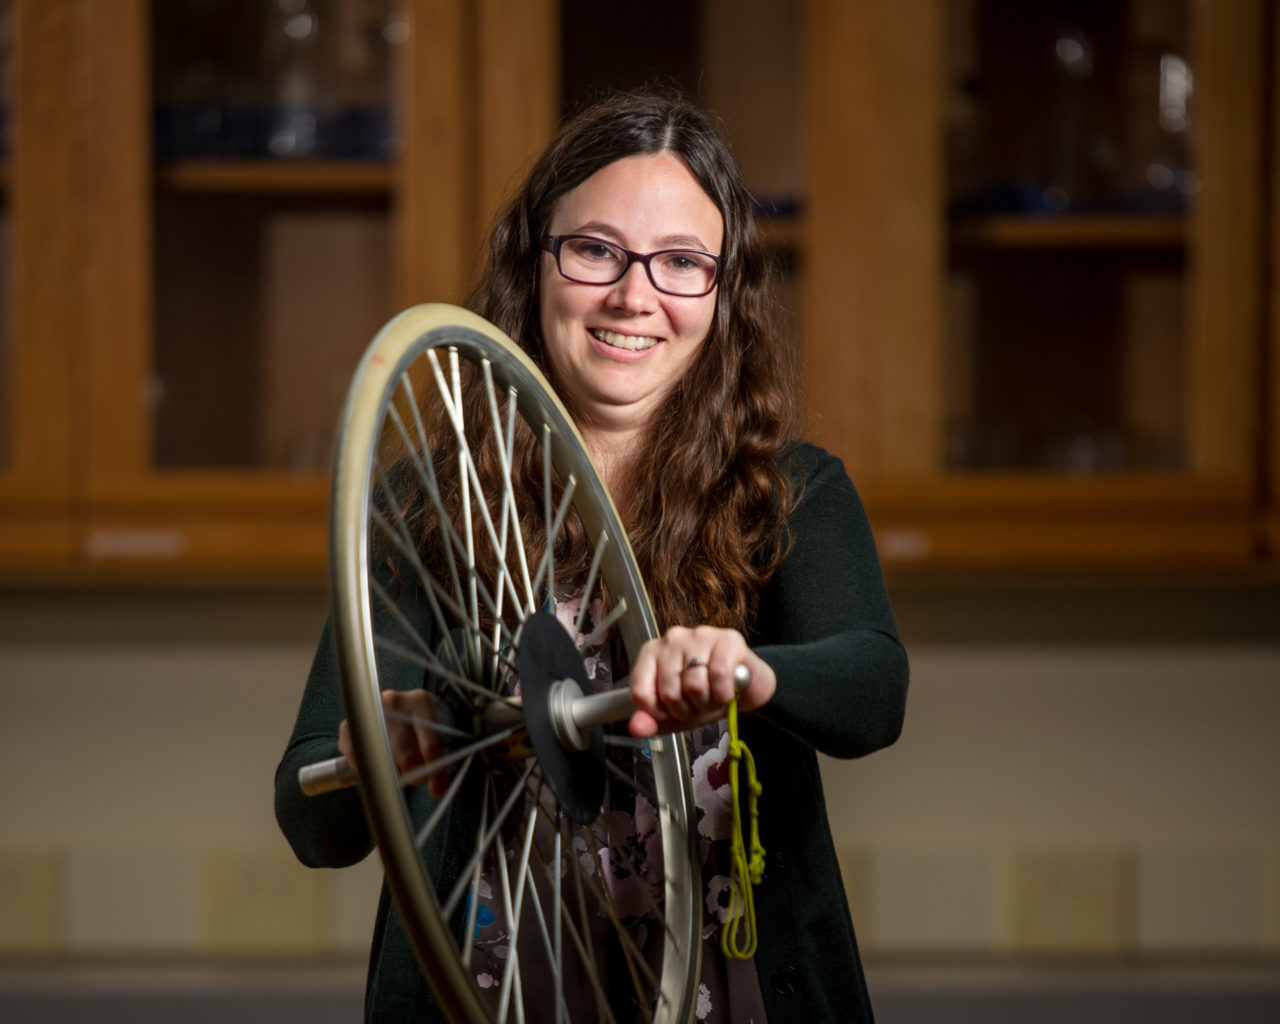 Photo of Robynne Lock holding a bicycle tired used for an experiment.